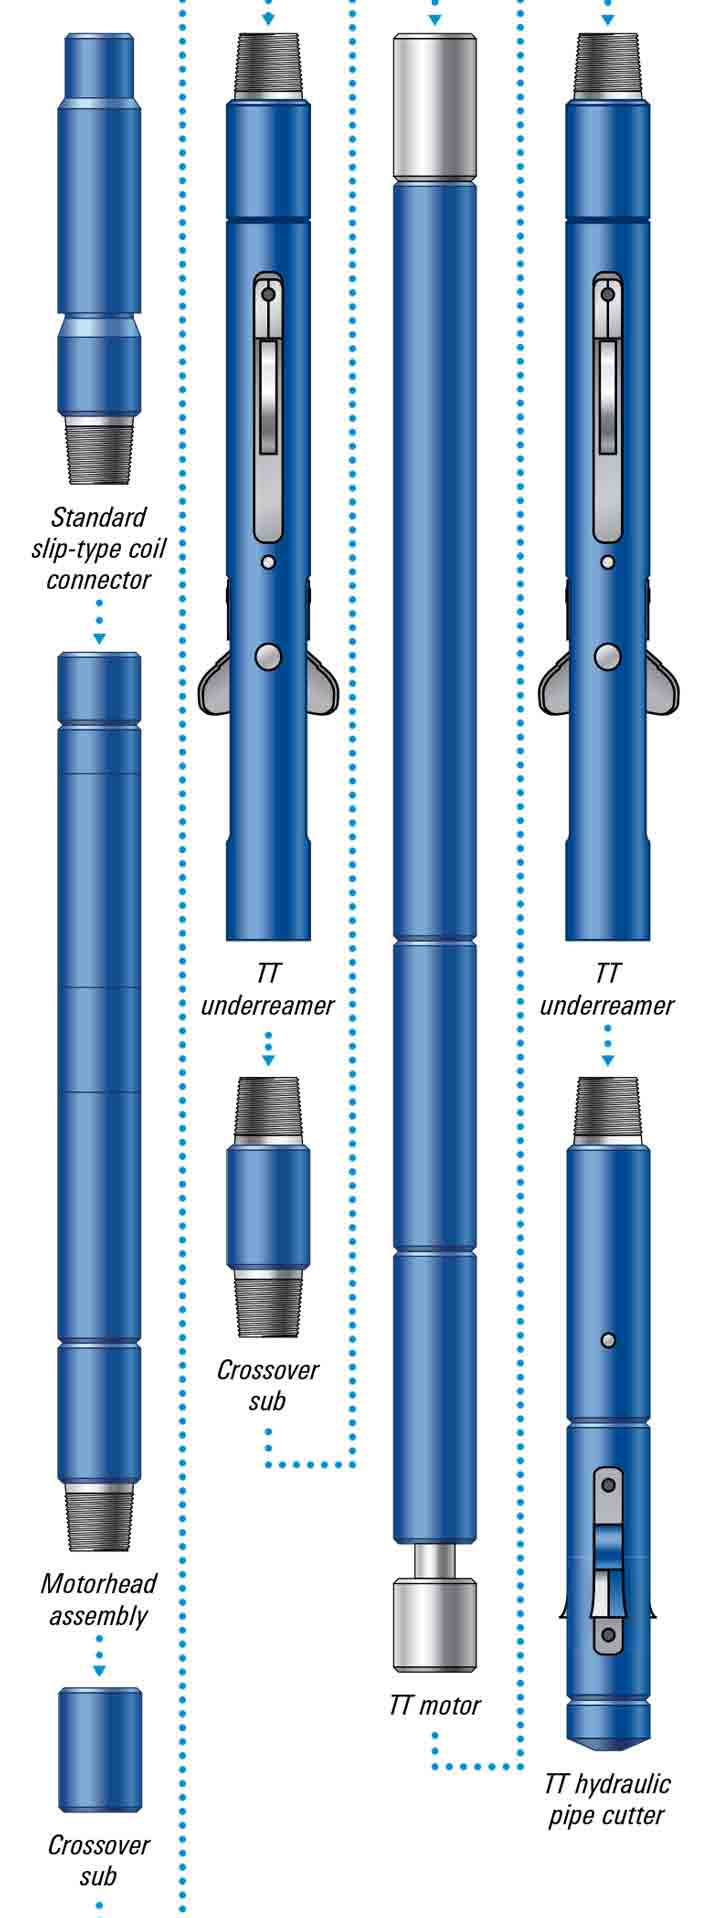 Graphic: Pacific Rubiales Saves Deviated Exploration Well With Thru-Tubing Intervention Technology - Thru-tubing hydraulic pipe cutter allows recovering 4-in cemented drillpipe to perform openhole sidetrack, Colombia